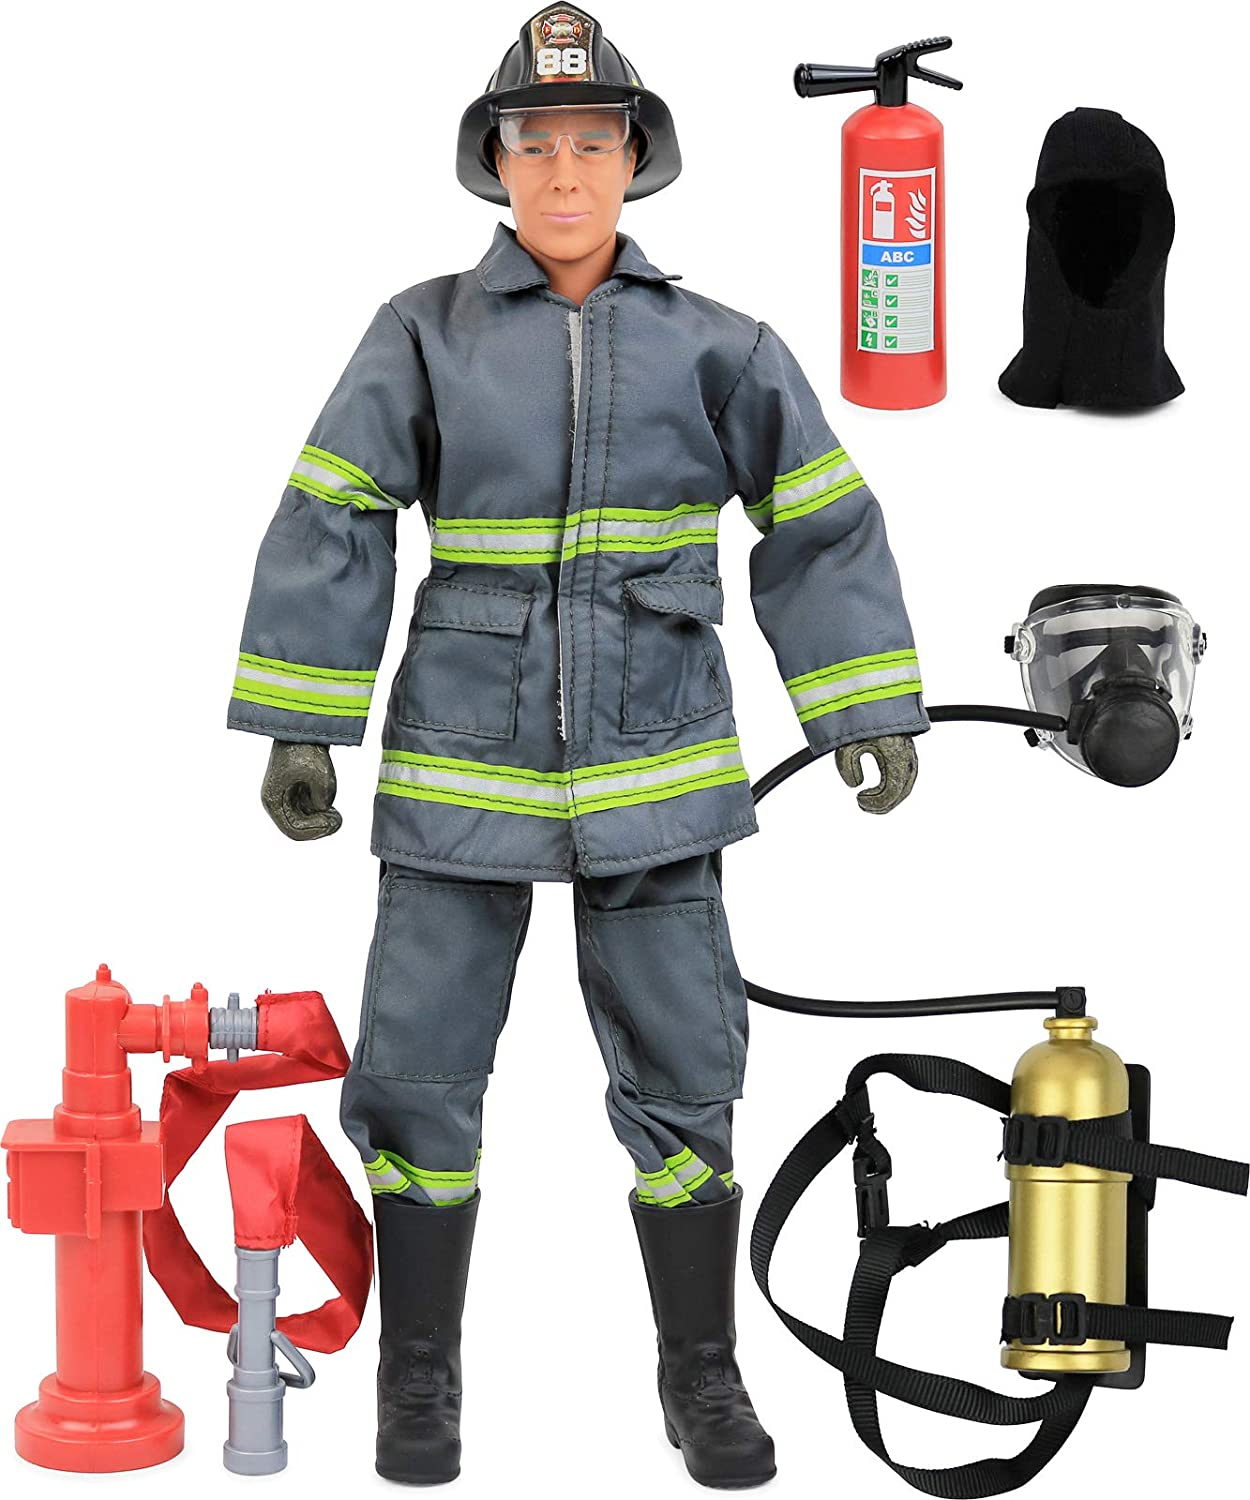 Urban Firefighter Oxygen Tank 1//6th Scale Action Figure Toys